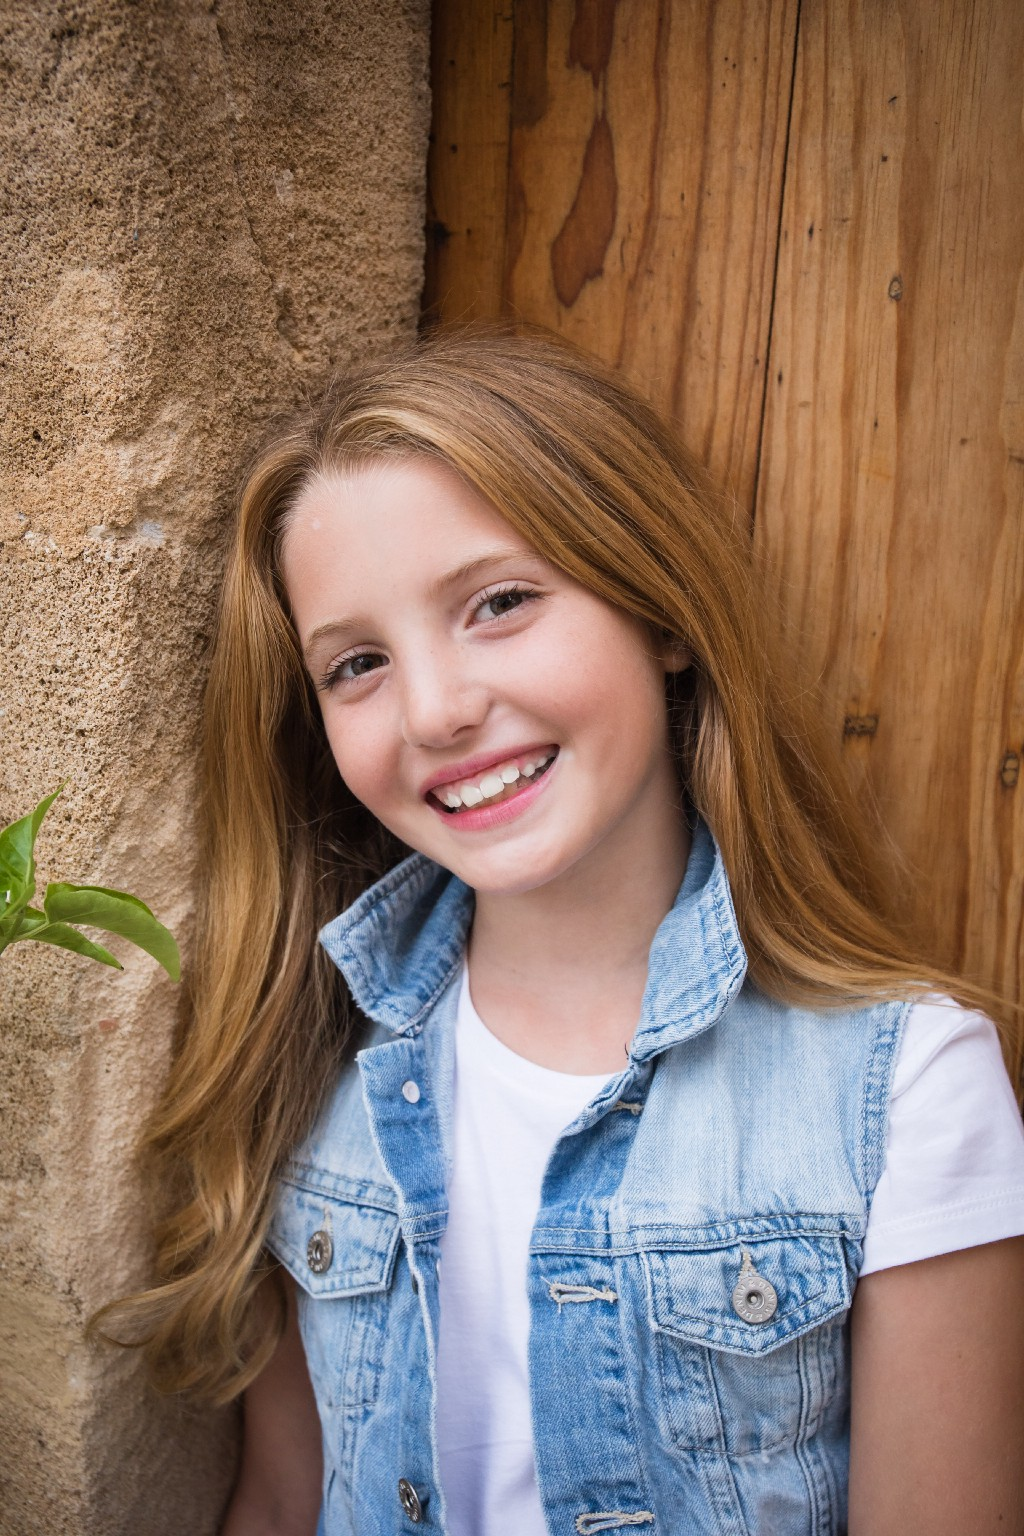 A song of support: Nine-year-old uses voice to give back - The Sun